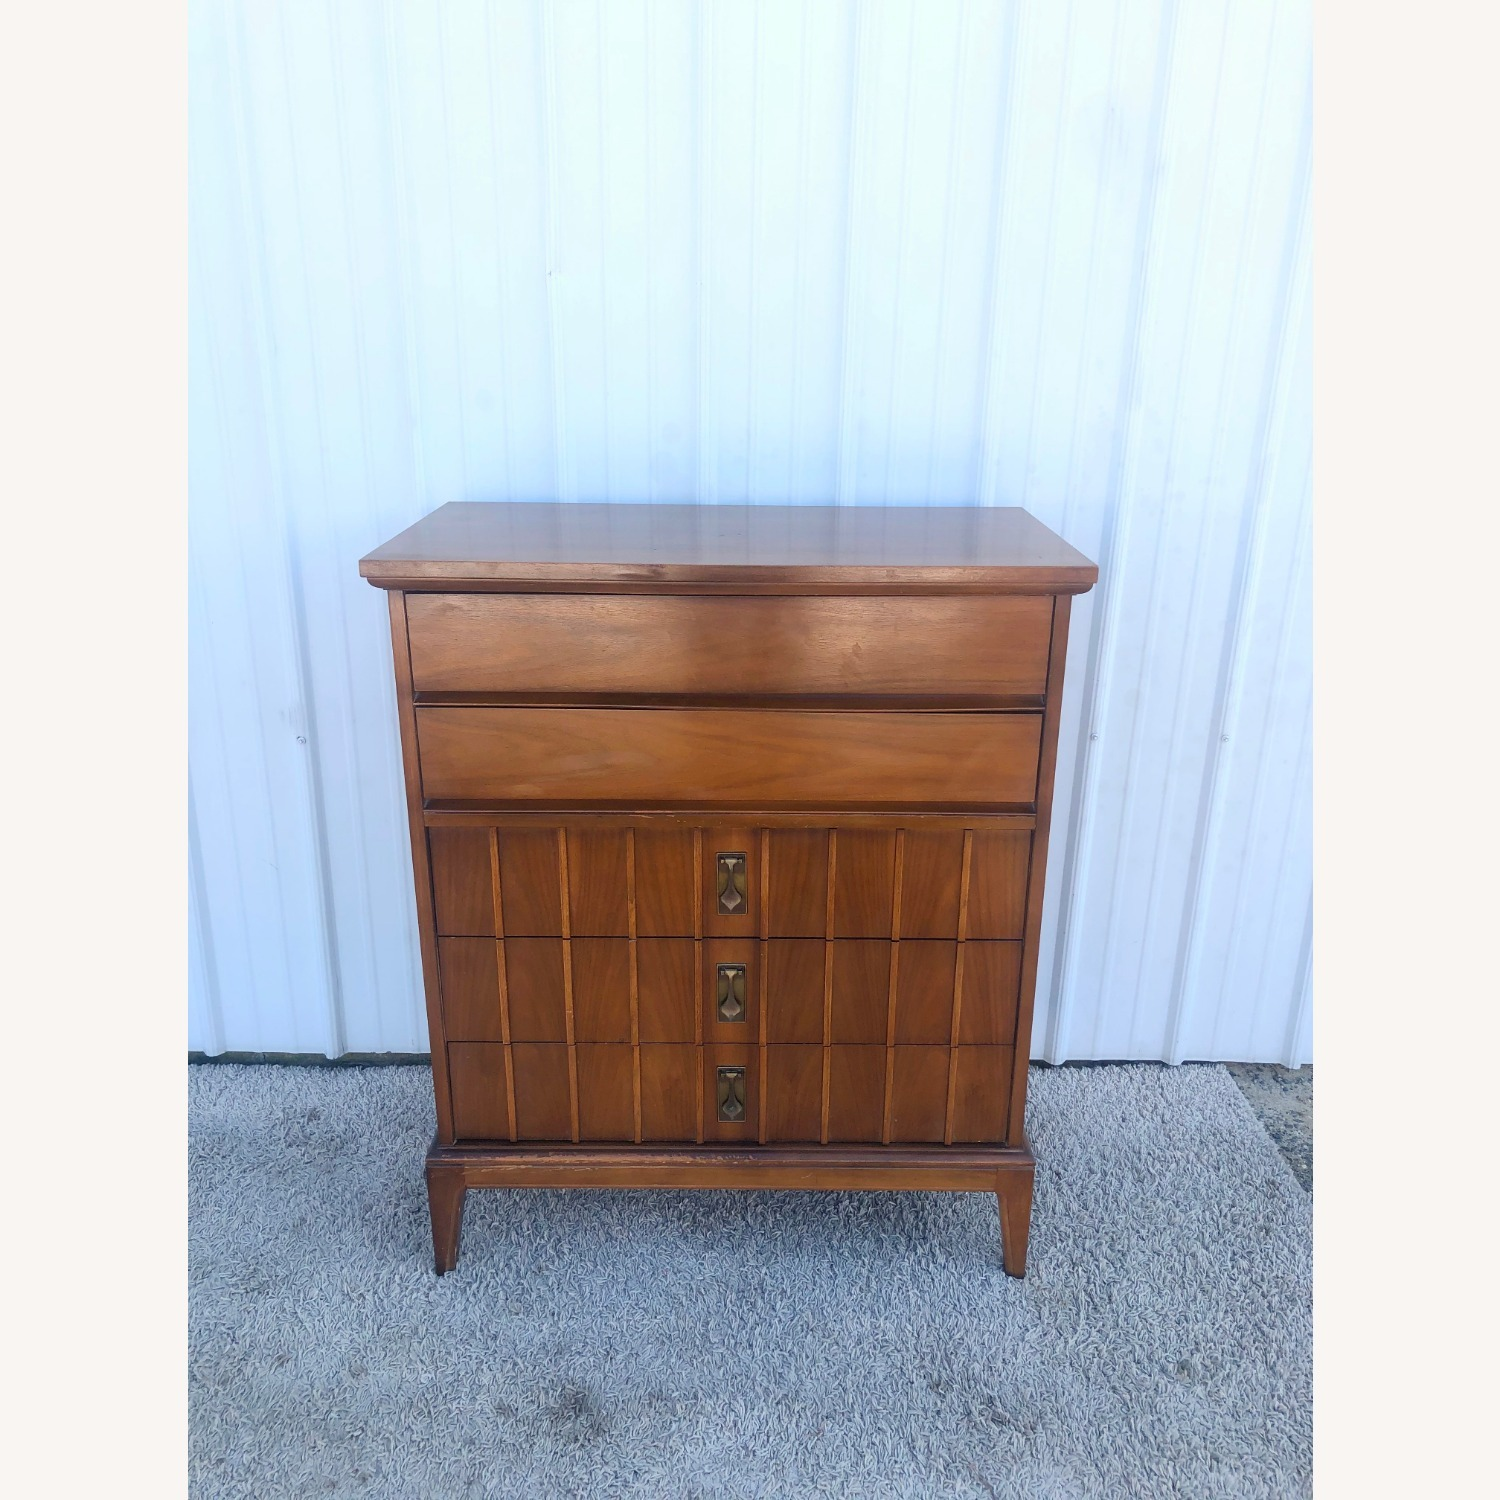 Mid Century Highboy Dresser with 5 Drawers - image-3